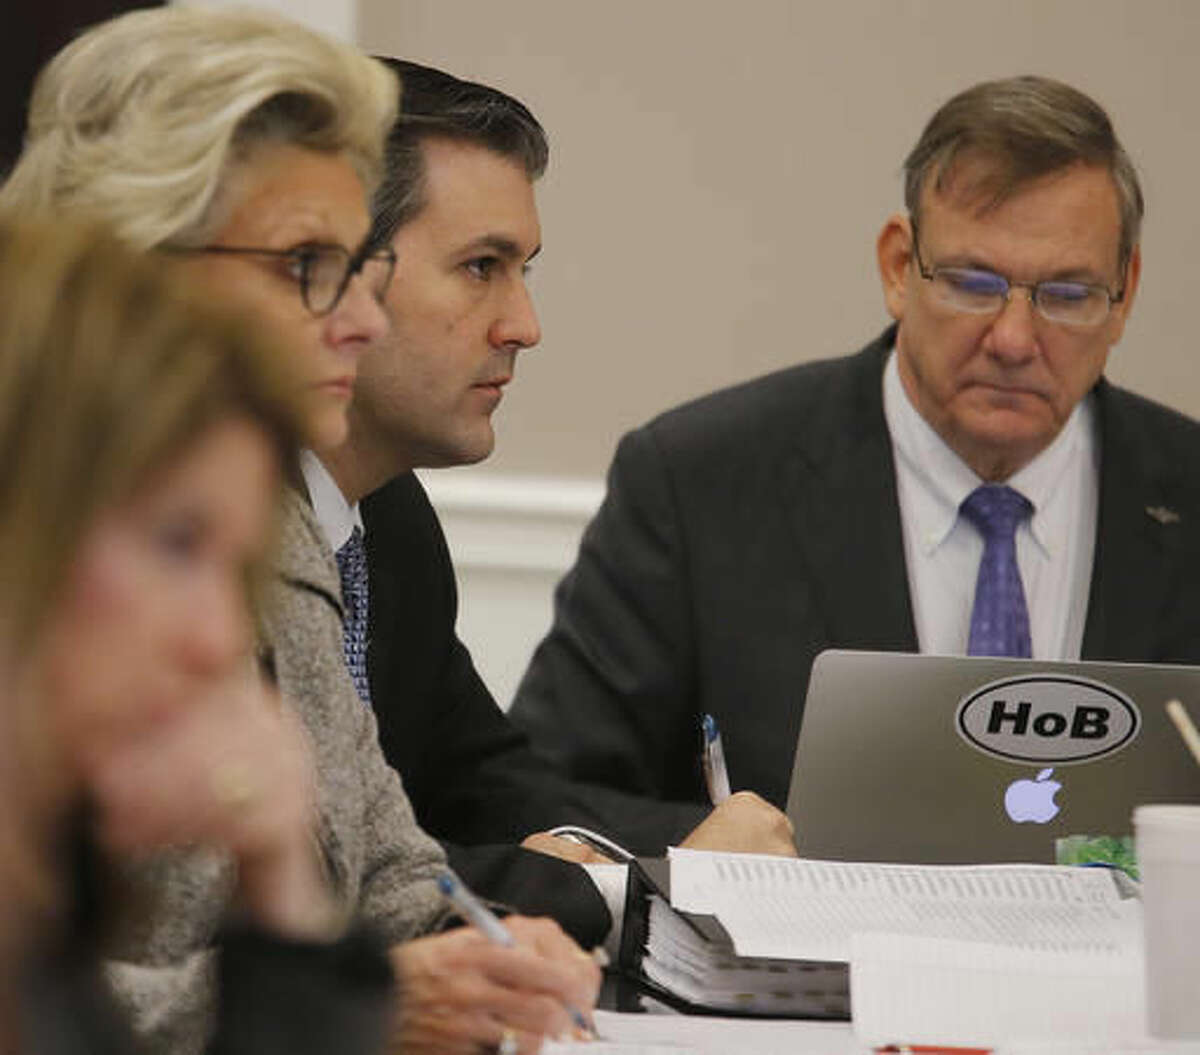 Former North Charleston Police Officer Michael Slager sits at the defense table during testimony in Slager's murder trial, Tuesday, Nov. 8, 2016, in Charleston, S.C. Slager is on trial facing a murder charge in the shooting death of Walter Scott, who was gunned down after he fled from a traffic stop. (Grace Beahm/Post and Courier via AP, Pool)